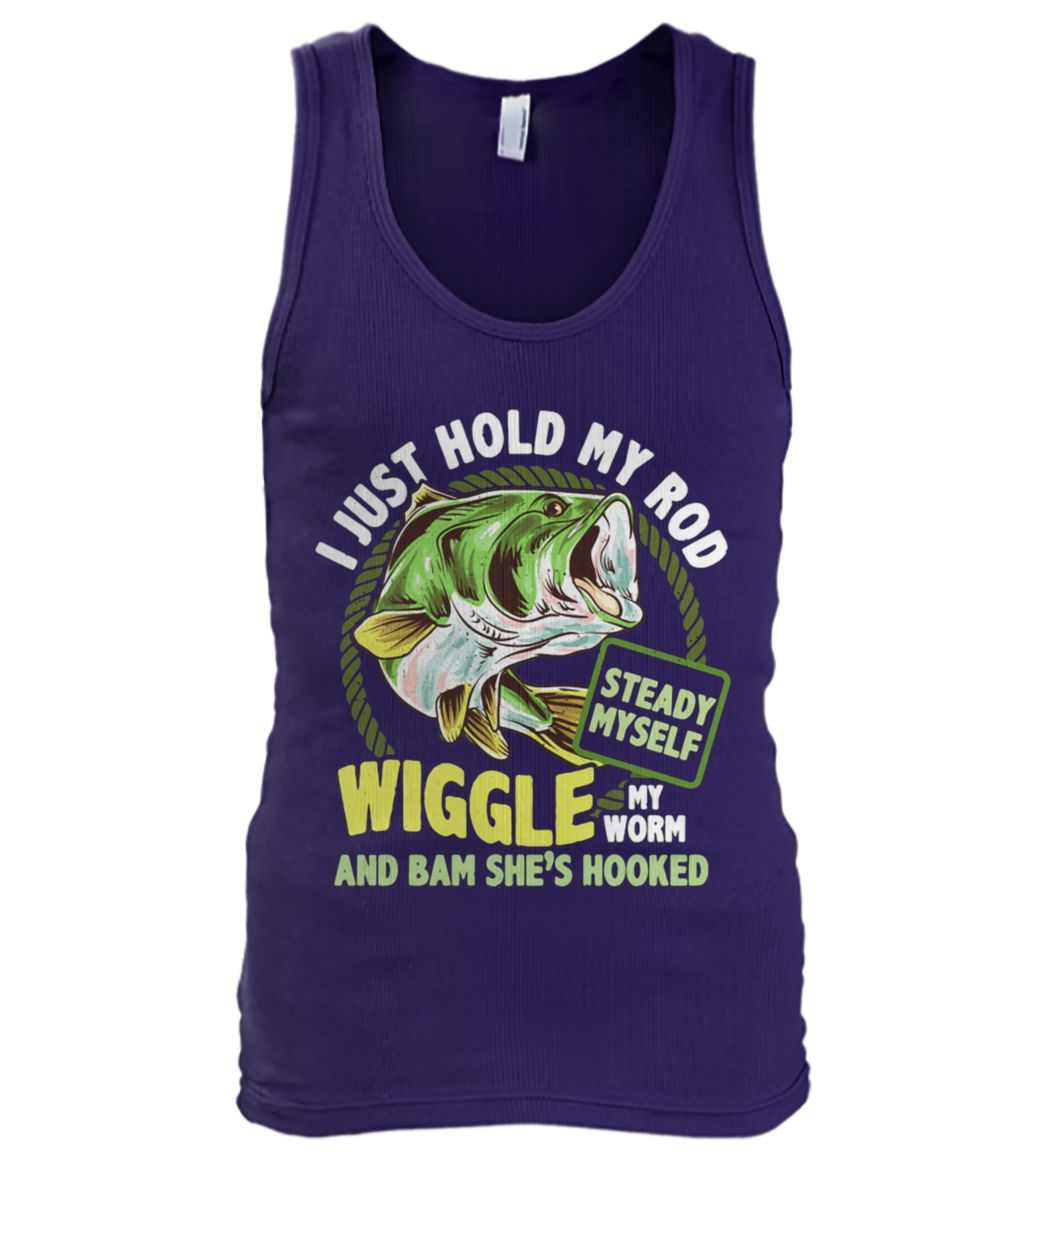 Fishing I just hold my rod steady myself wiggle my worm and bam she's hooked men's tank top